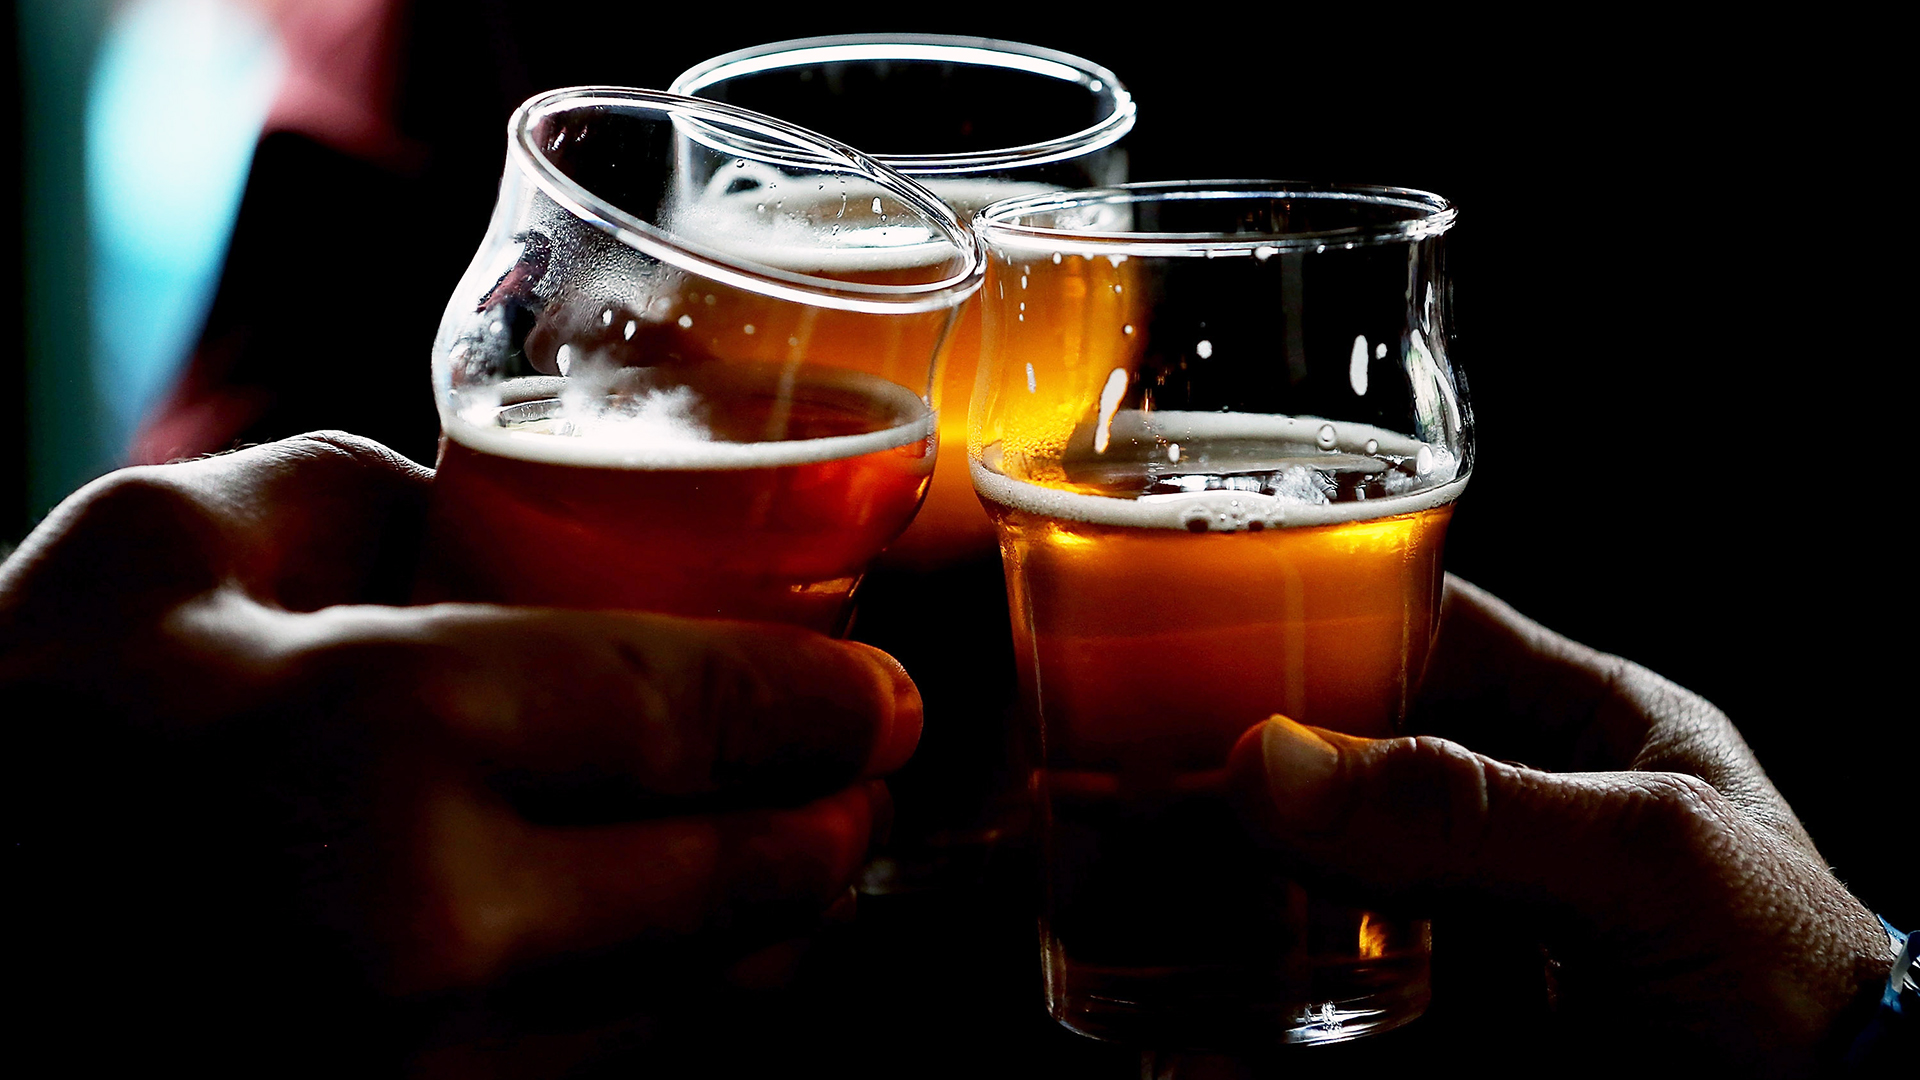 Beer glasses cheers-159532.jpg37433017